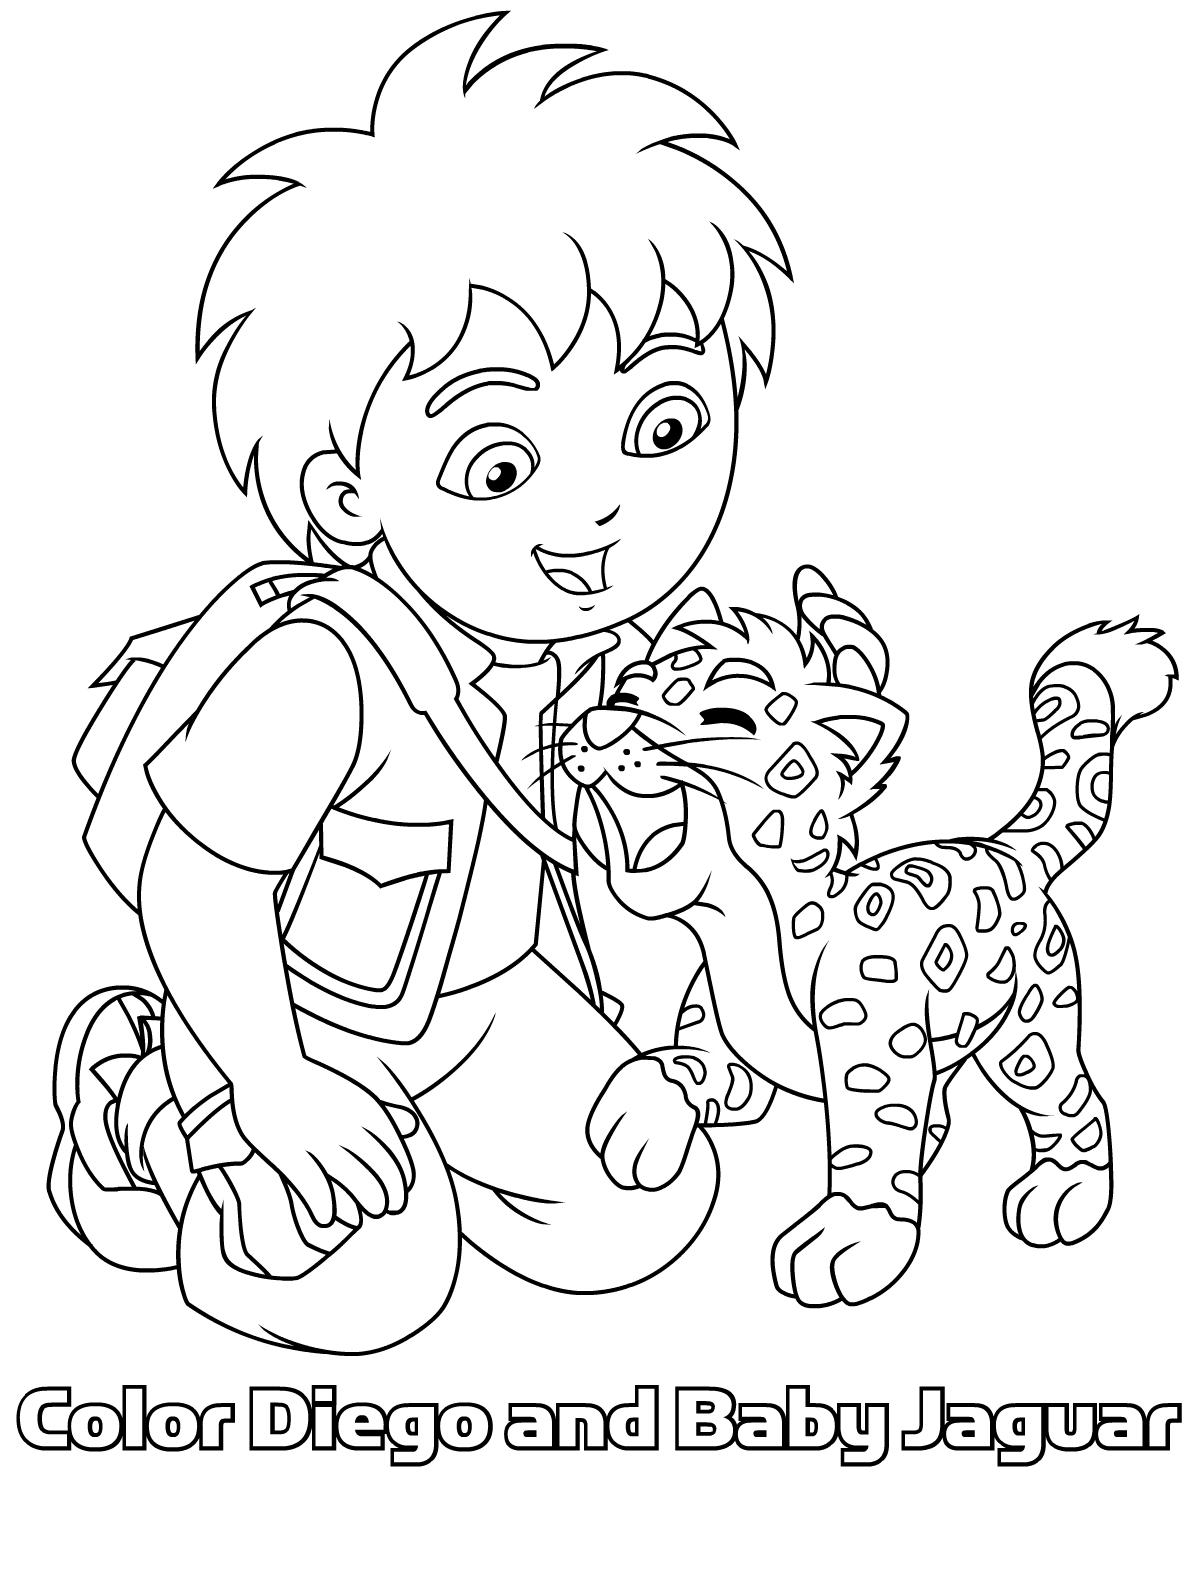 Free Printable Diego Coloring Pages For Kids Colouring Pages Free